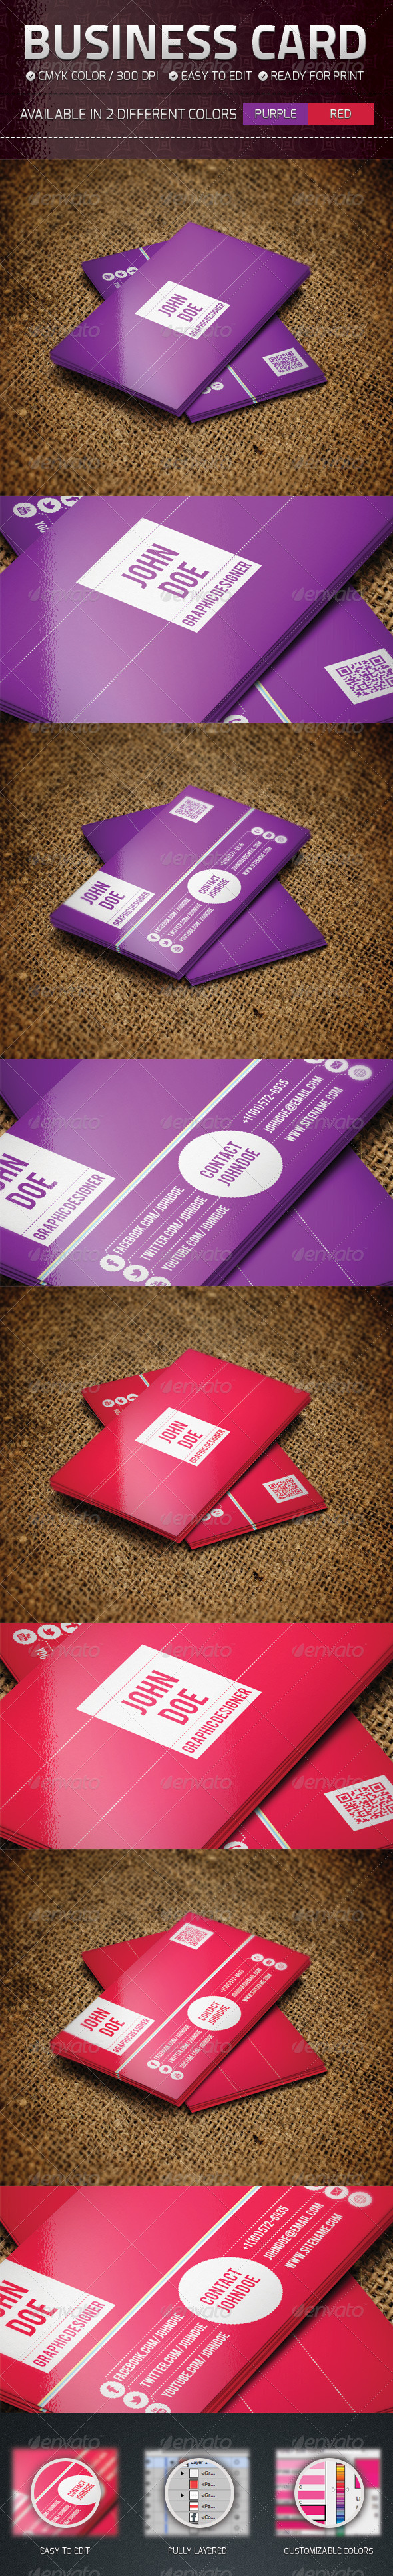 GraphicRiver Purple and Red Business Card 4764281